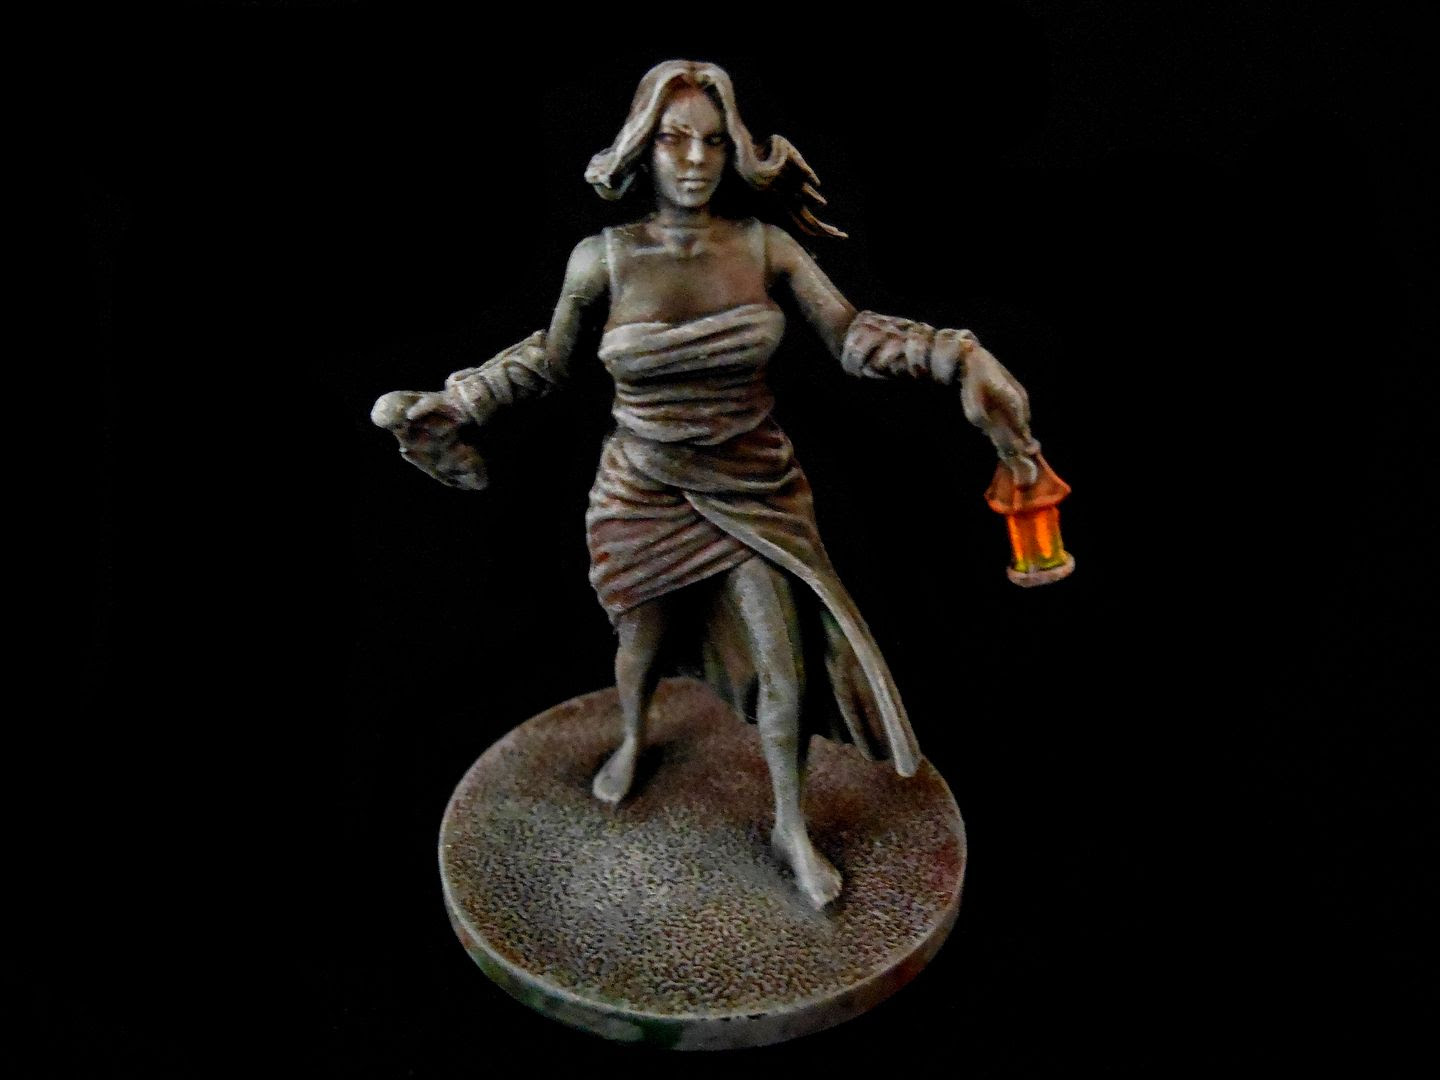 A female survivor from Kingdom Death: Monster painted to look like a stone state with a glowing lantern.